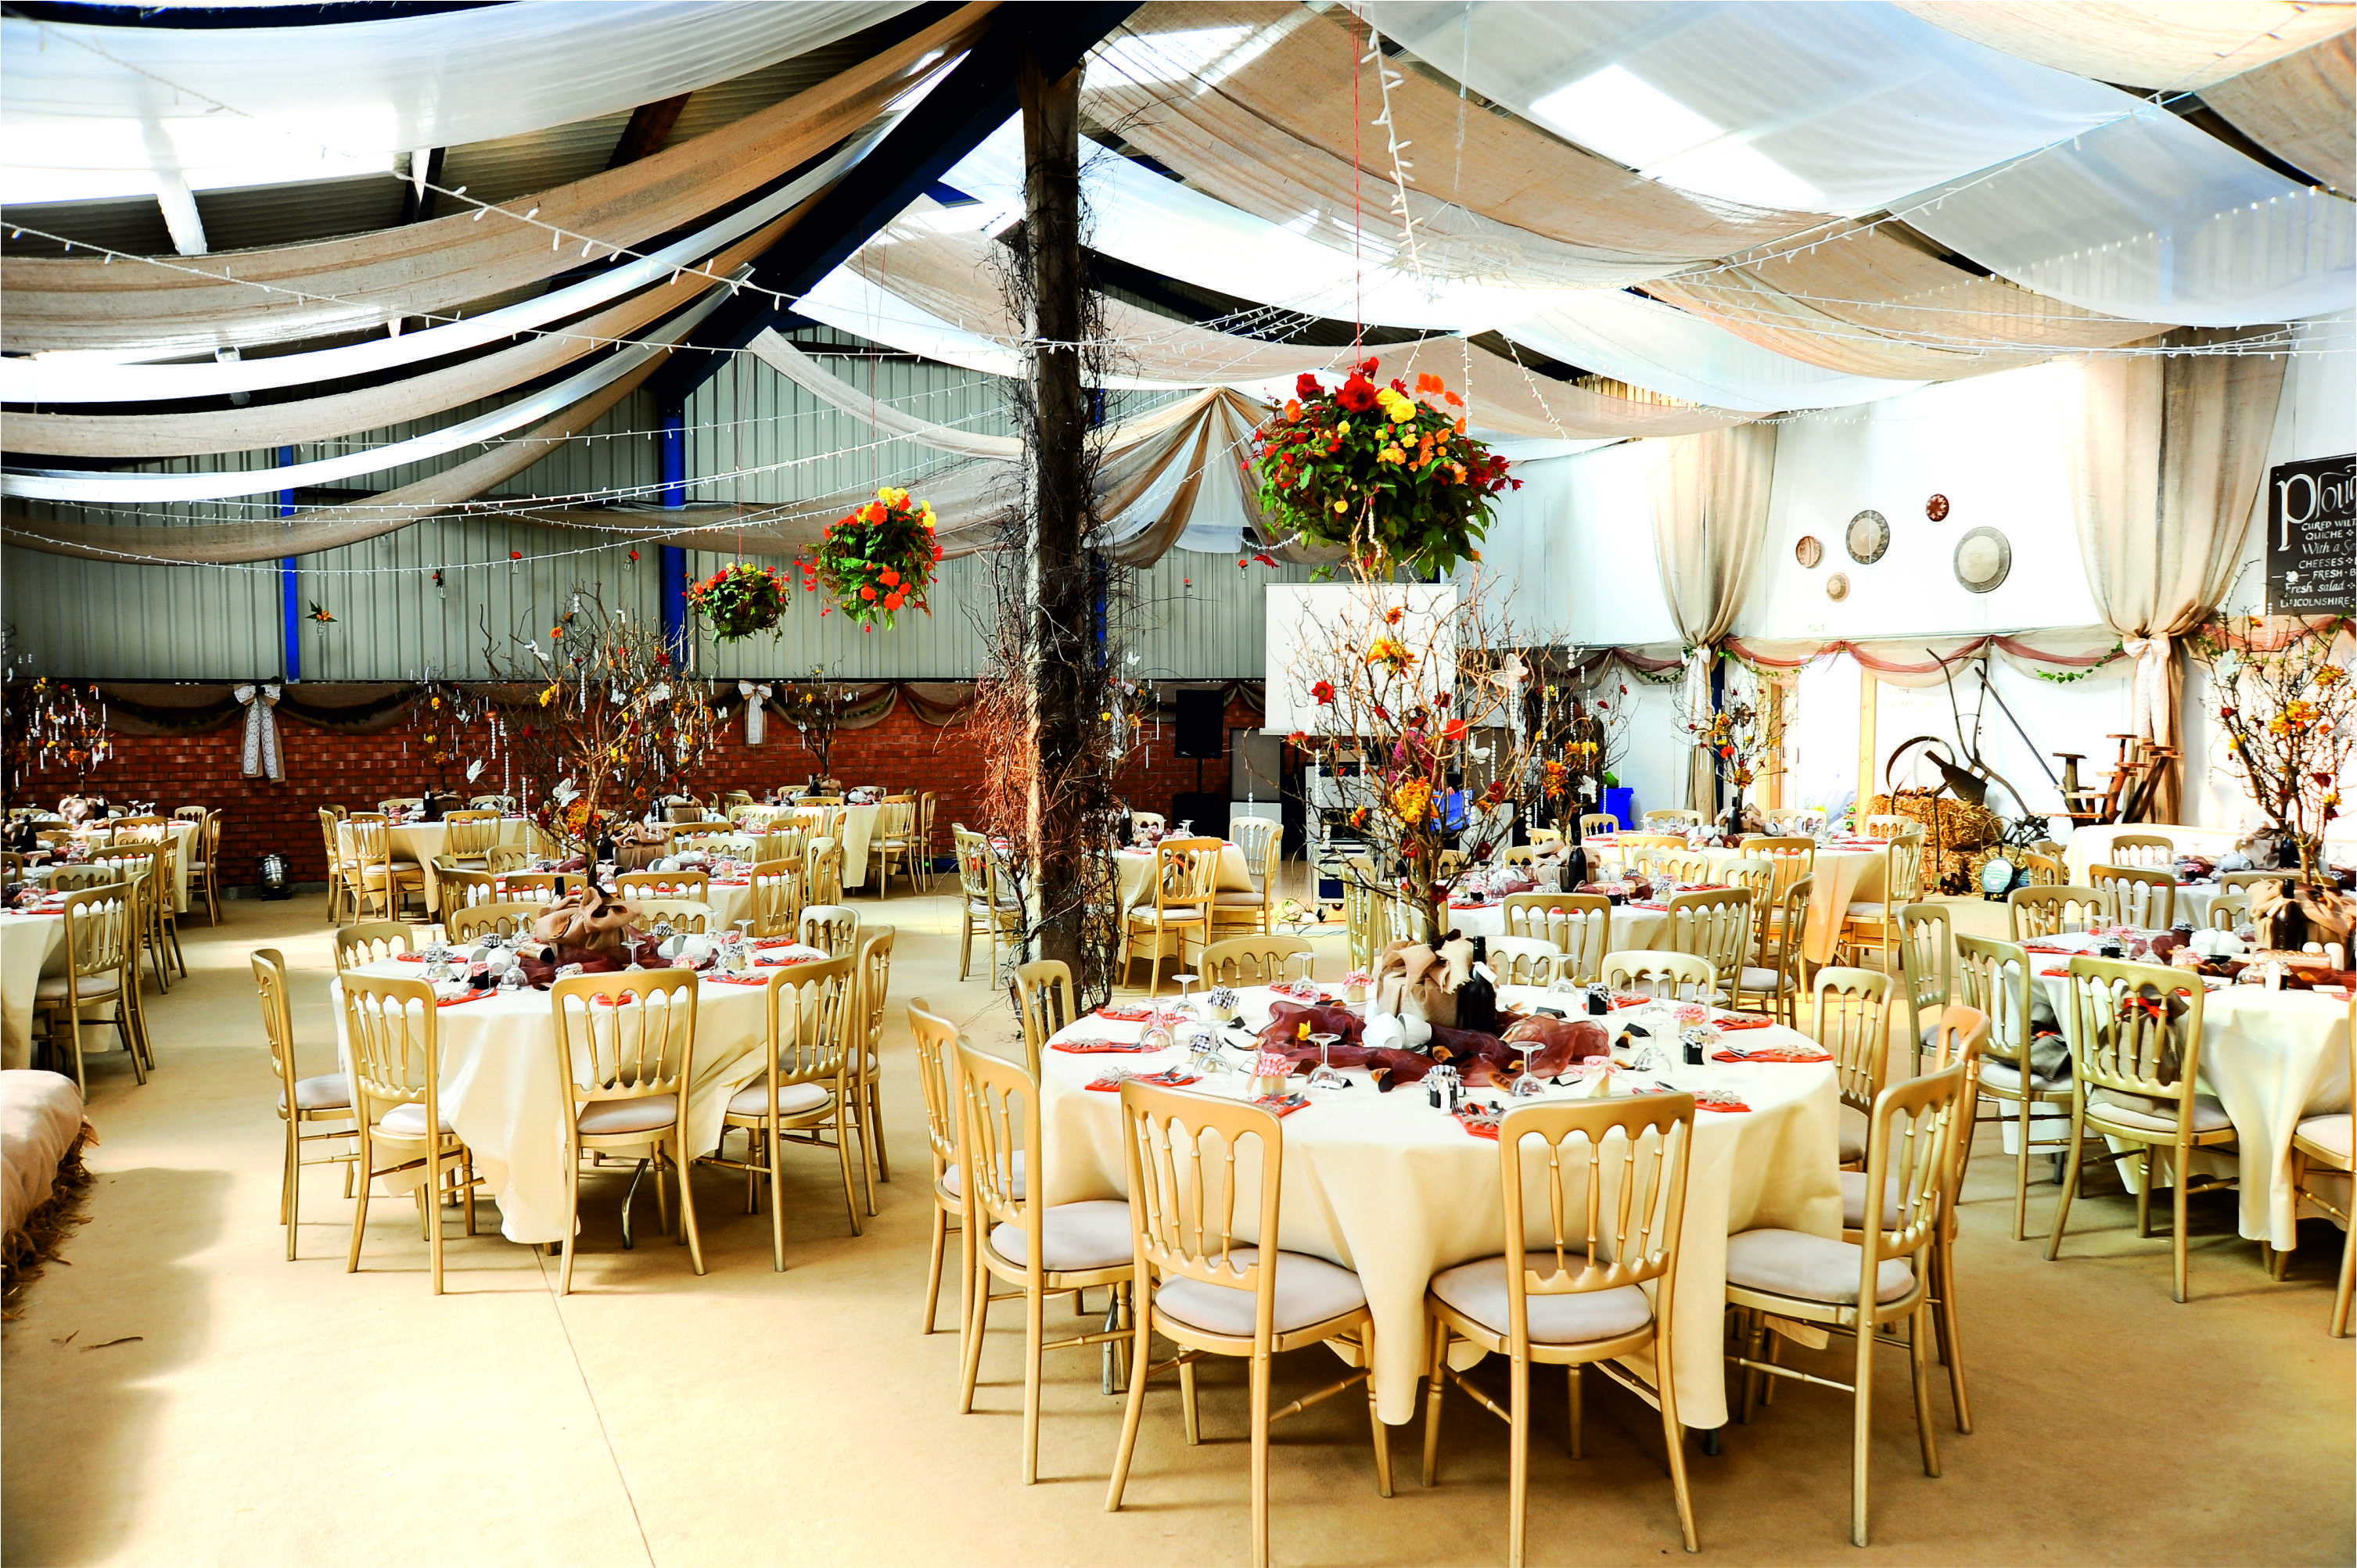 Barn wedding reception wedding ideas pinterest for Wedding reception photo ideas